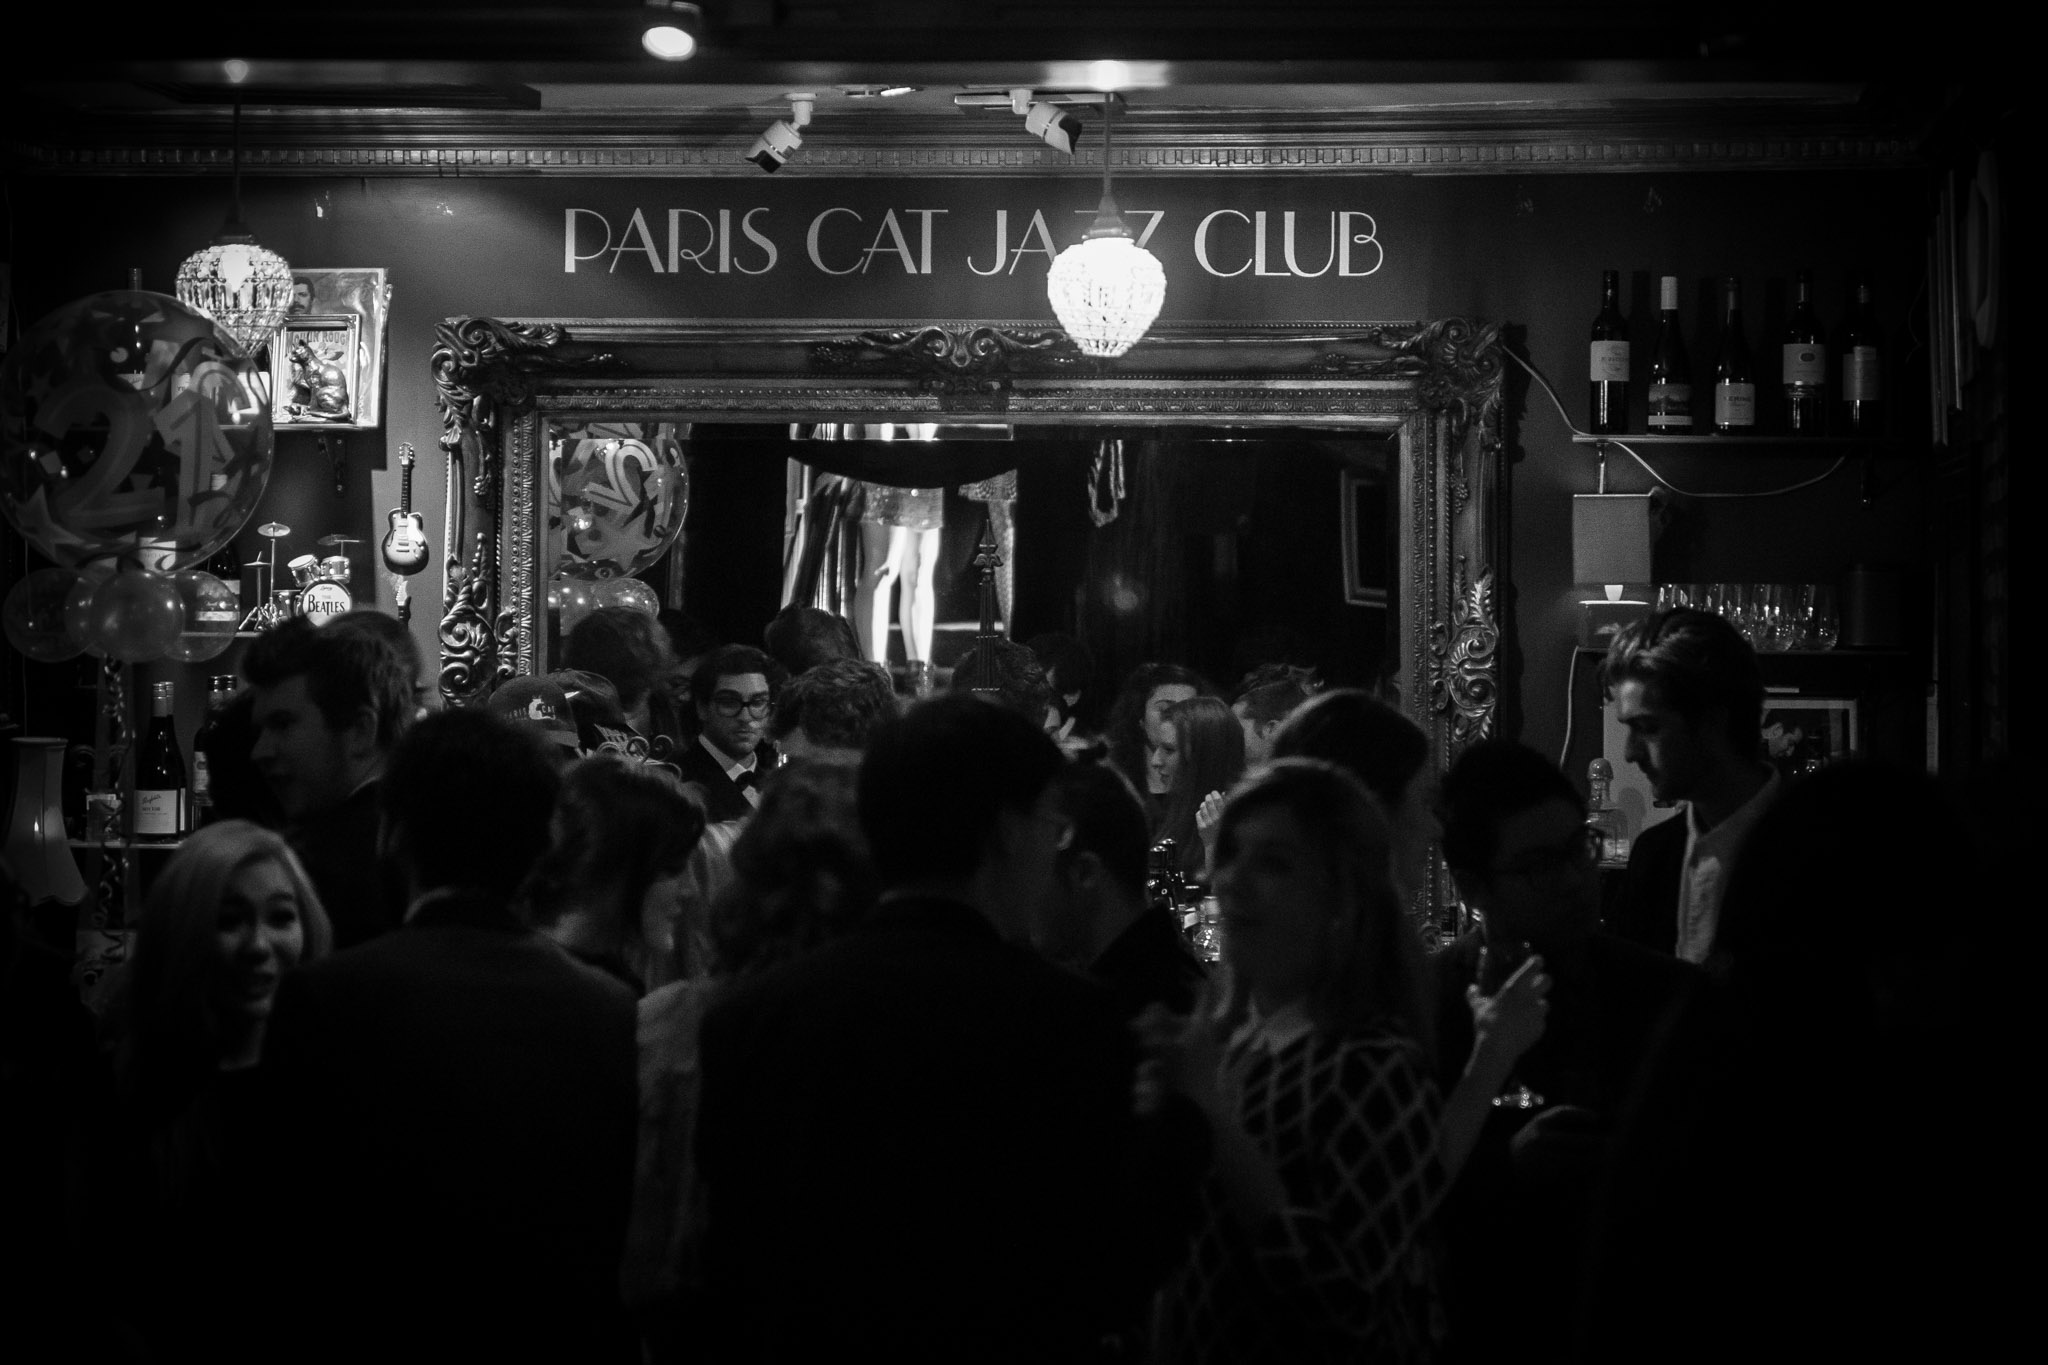 The Paris Cat: Striking a chord, and turning hot jazz into cool cash